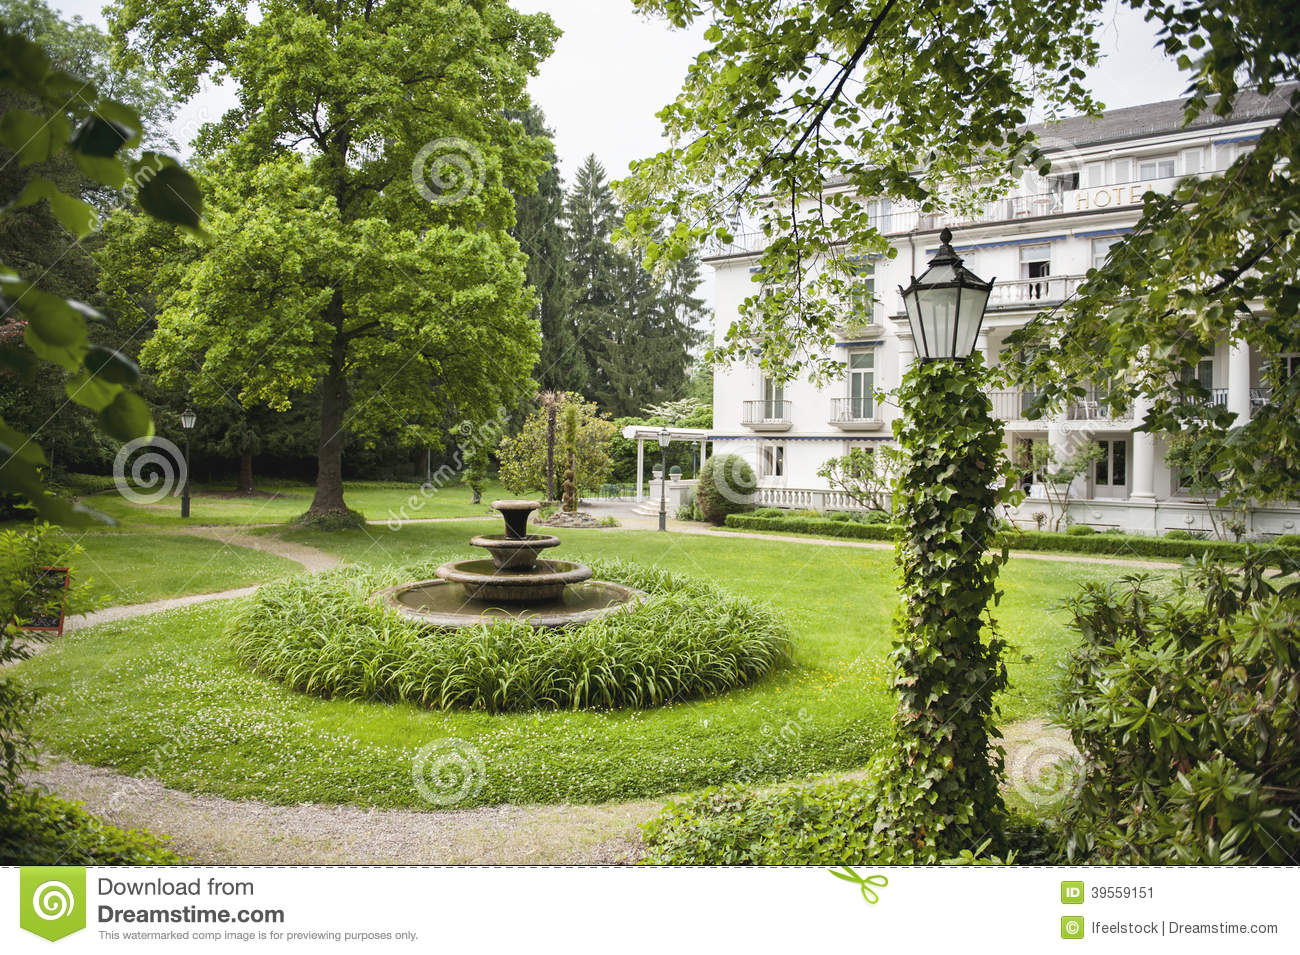 Jardin anglais avec l 39 h tel l 39 arri re plan photo stock for Photo de jardin anglais